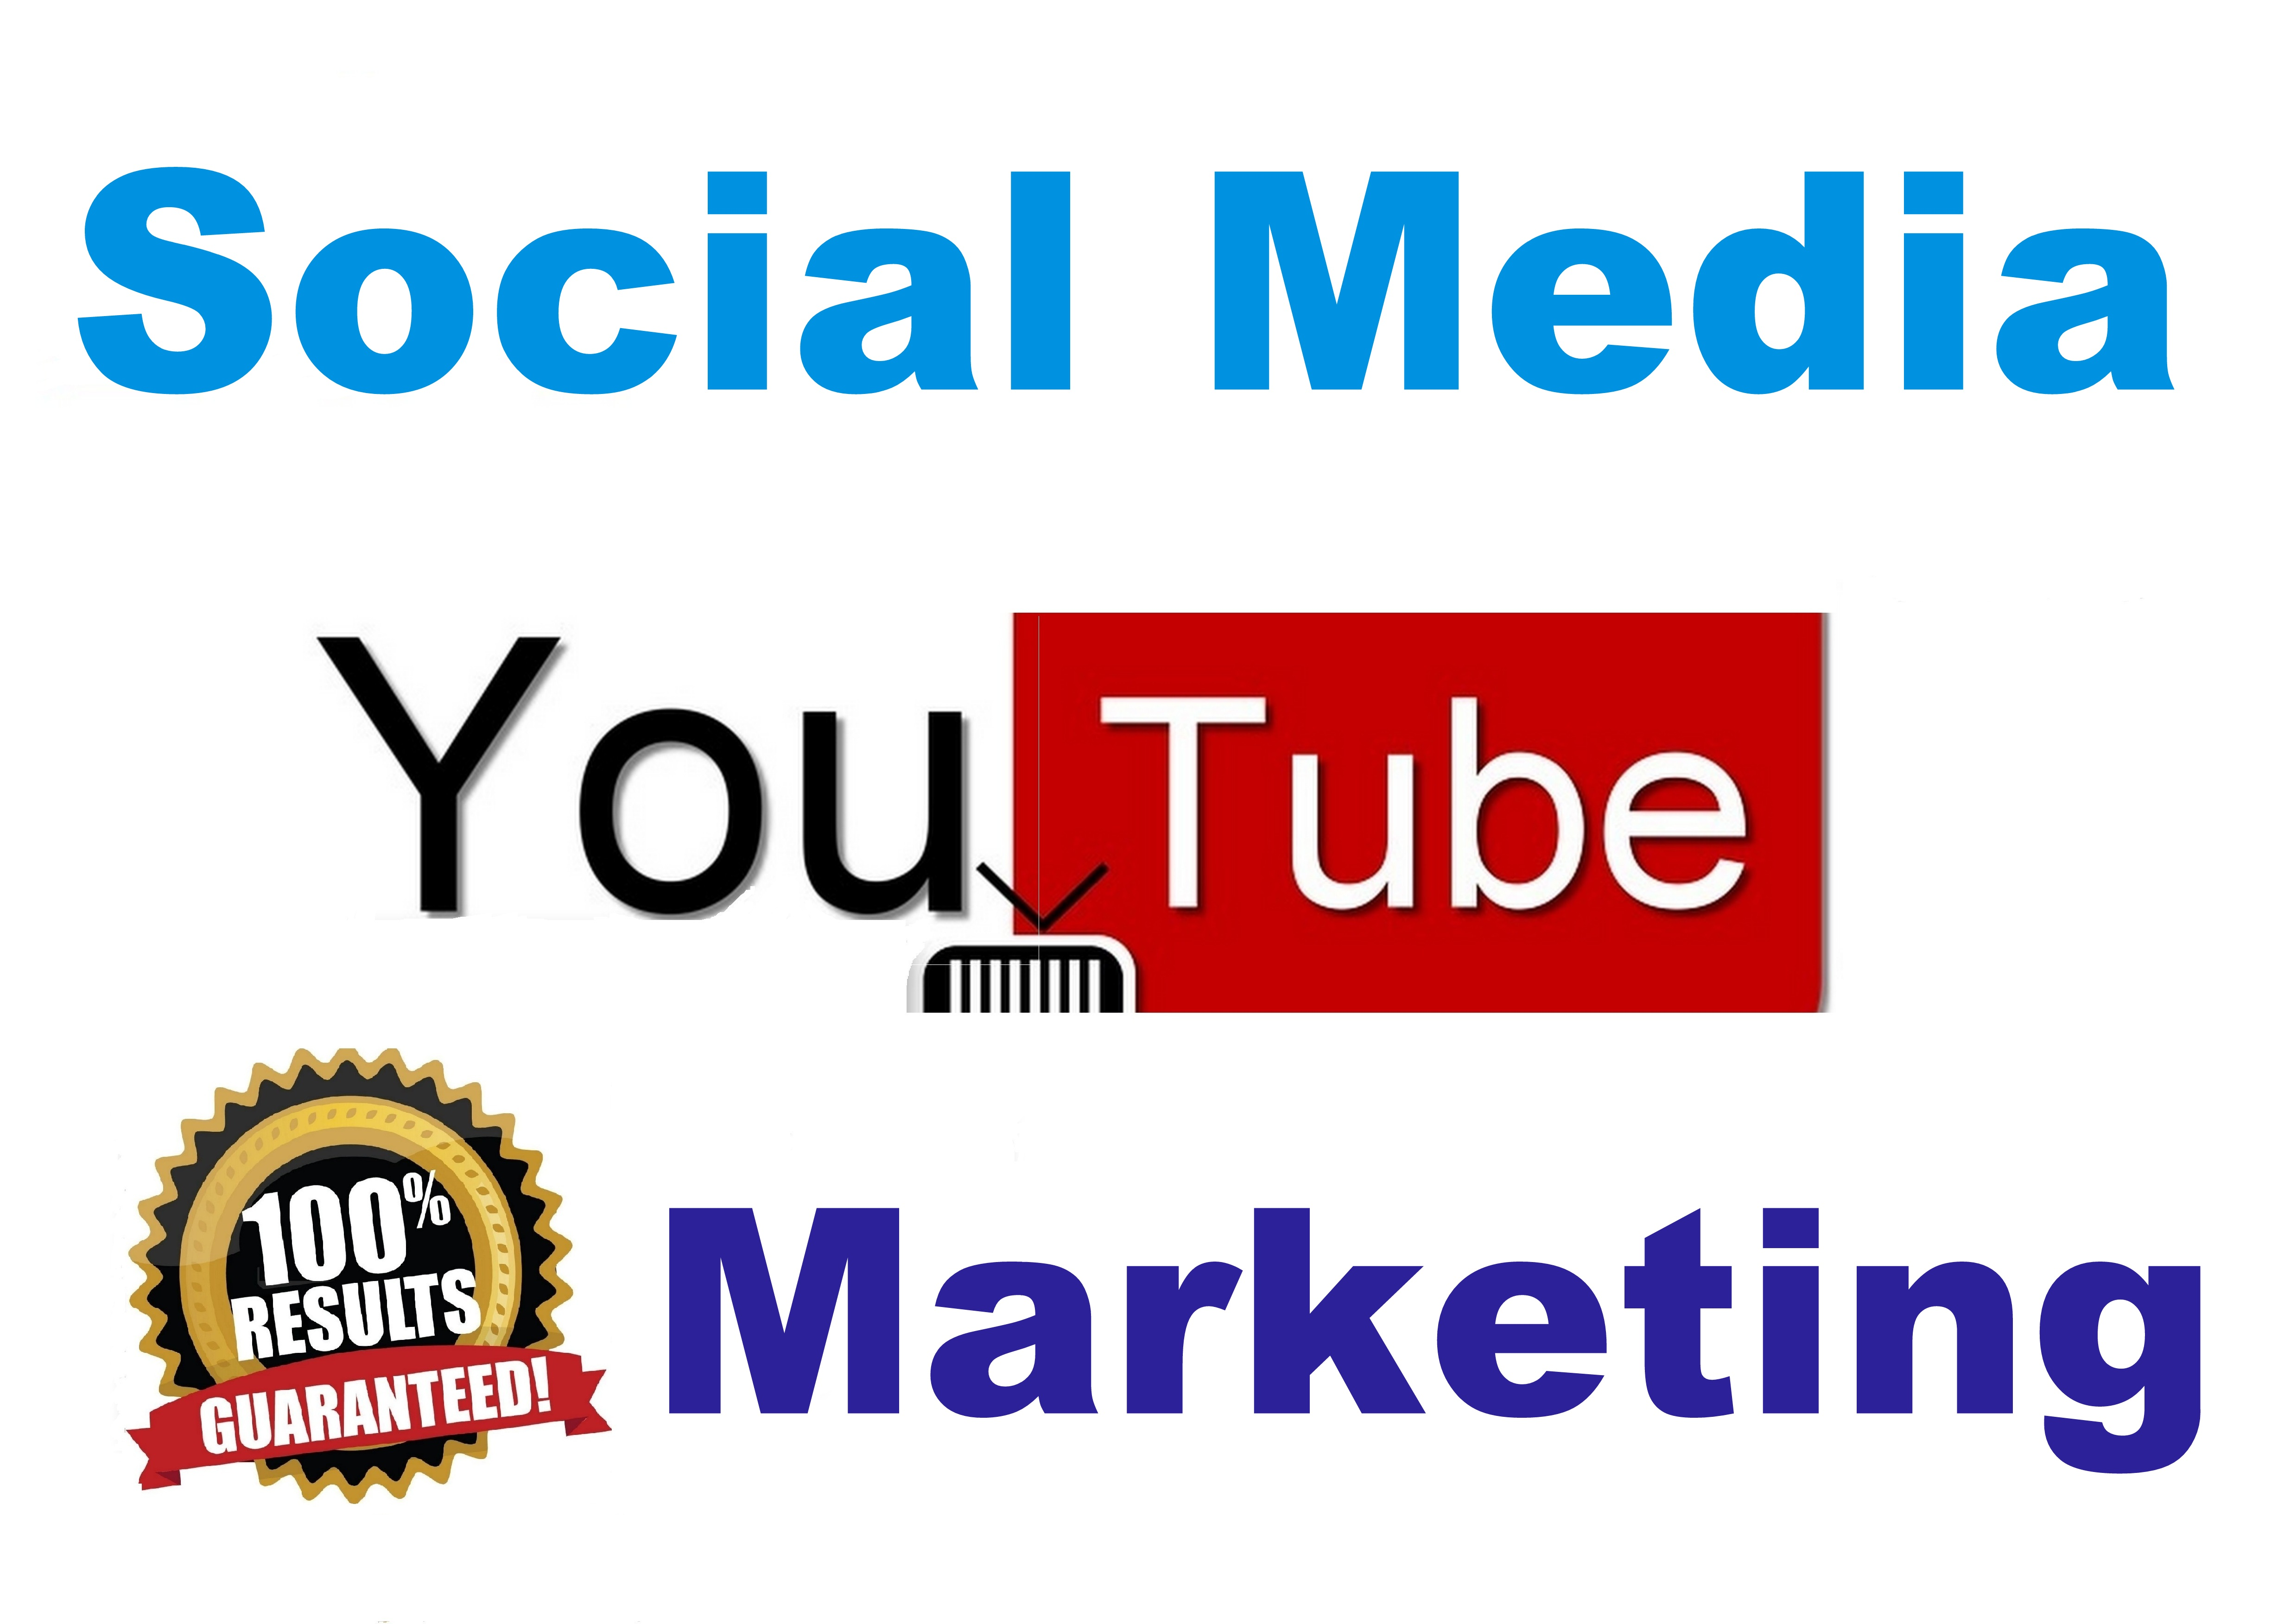 Youtube Video Marketing Boost through Social Ads